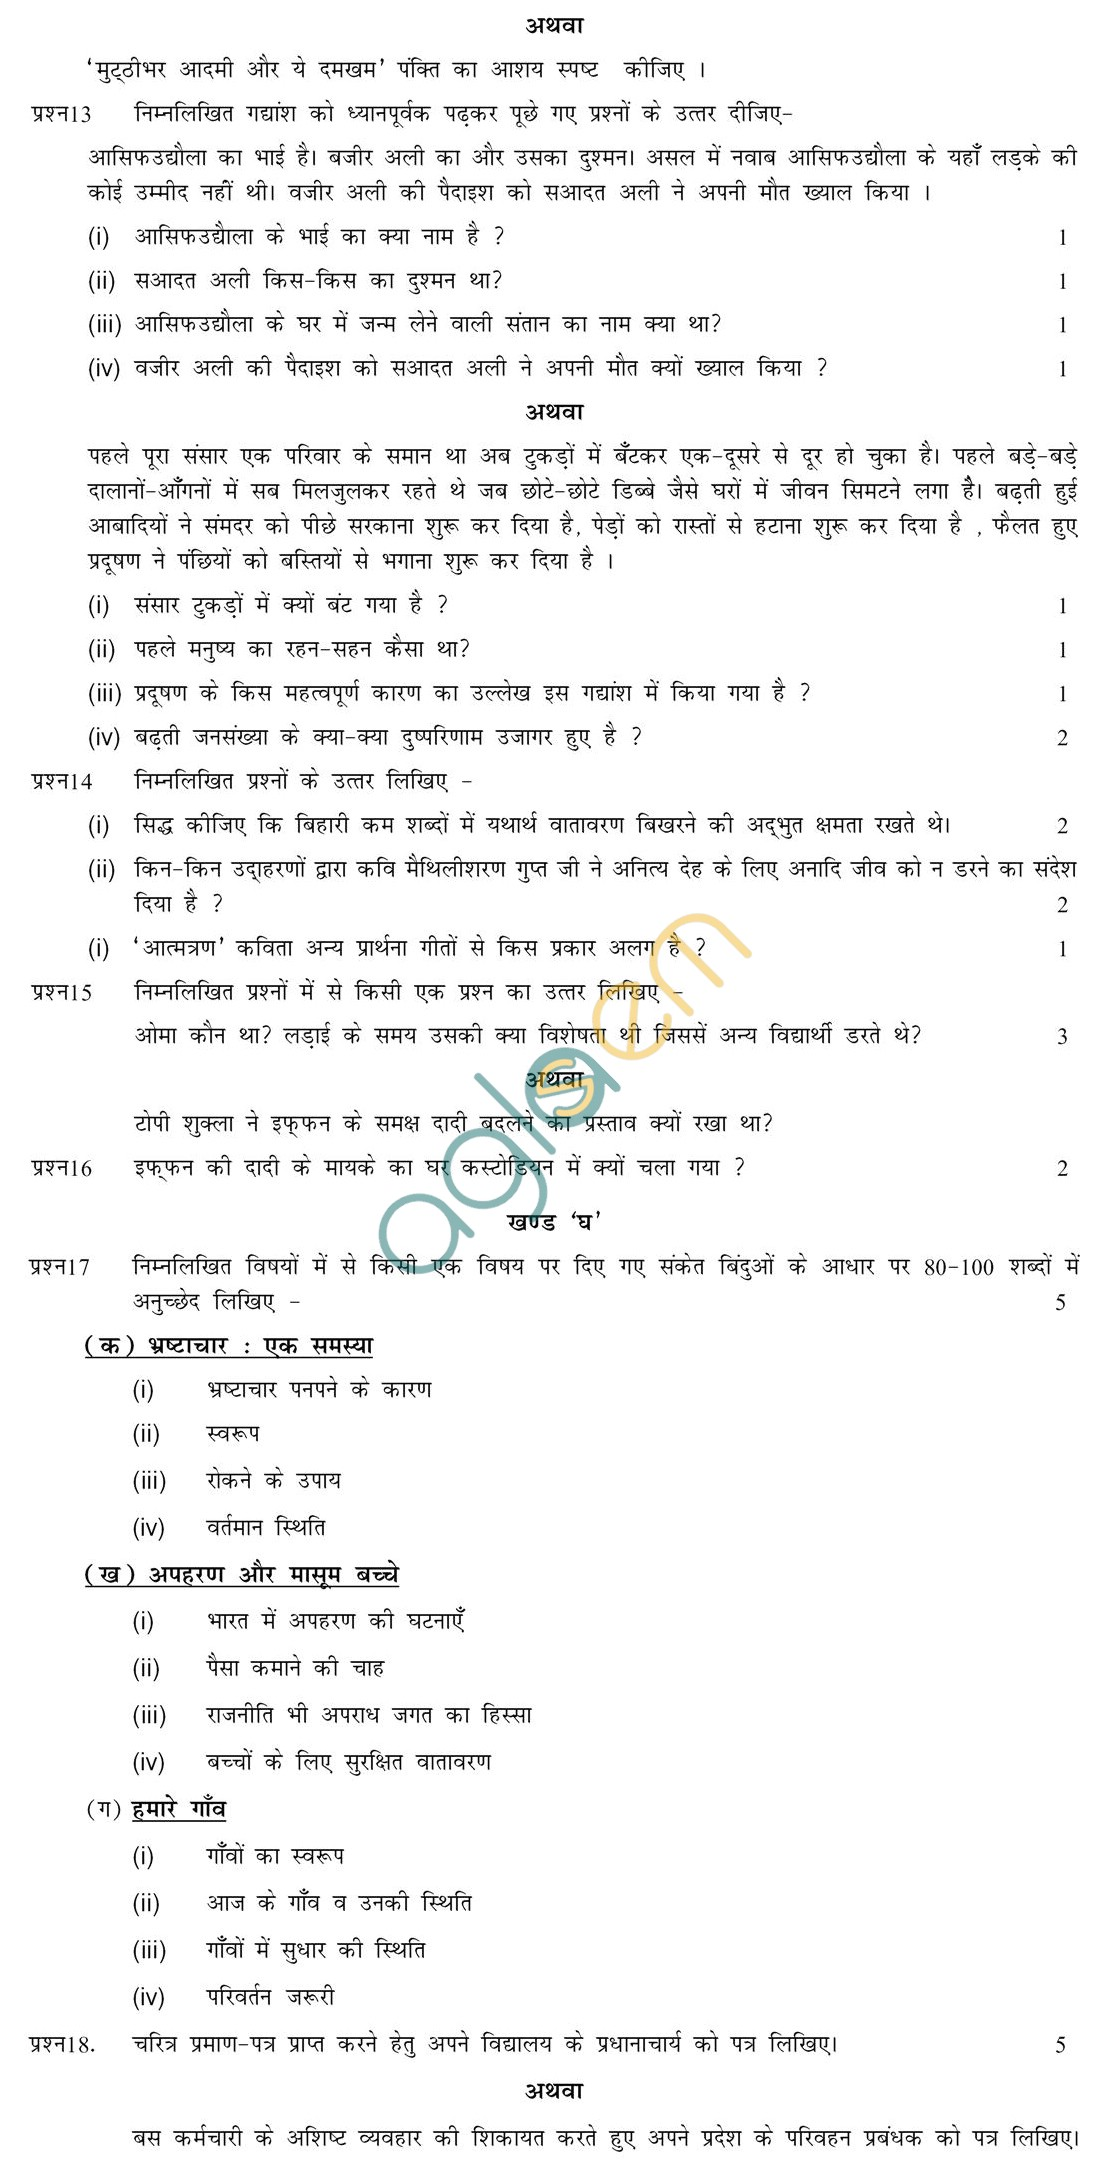 maths sample papers for class 9 sa2 pdf download